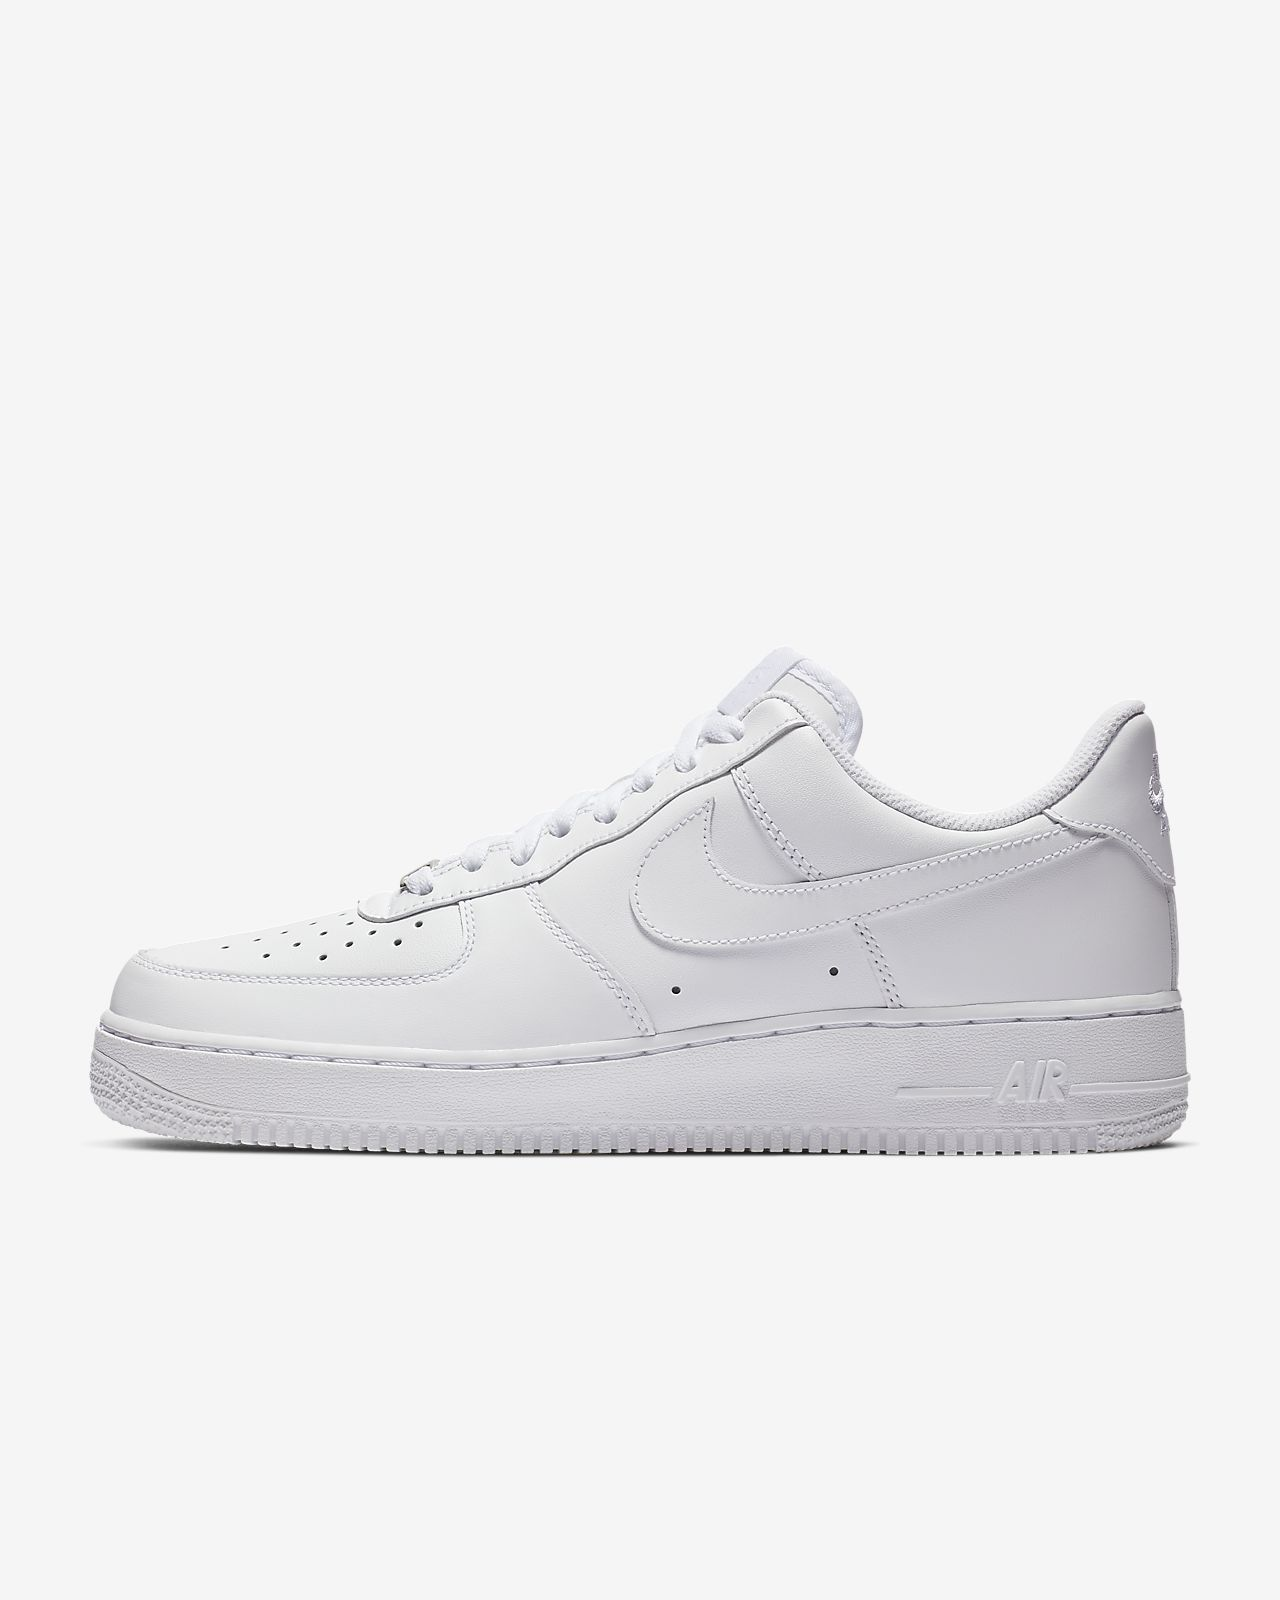 Nike Air Force 1 '07 Triple White Women's Shoe